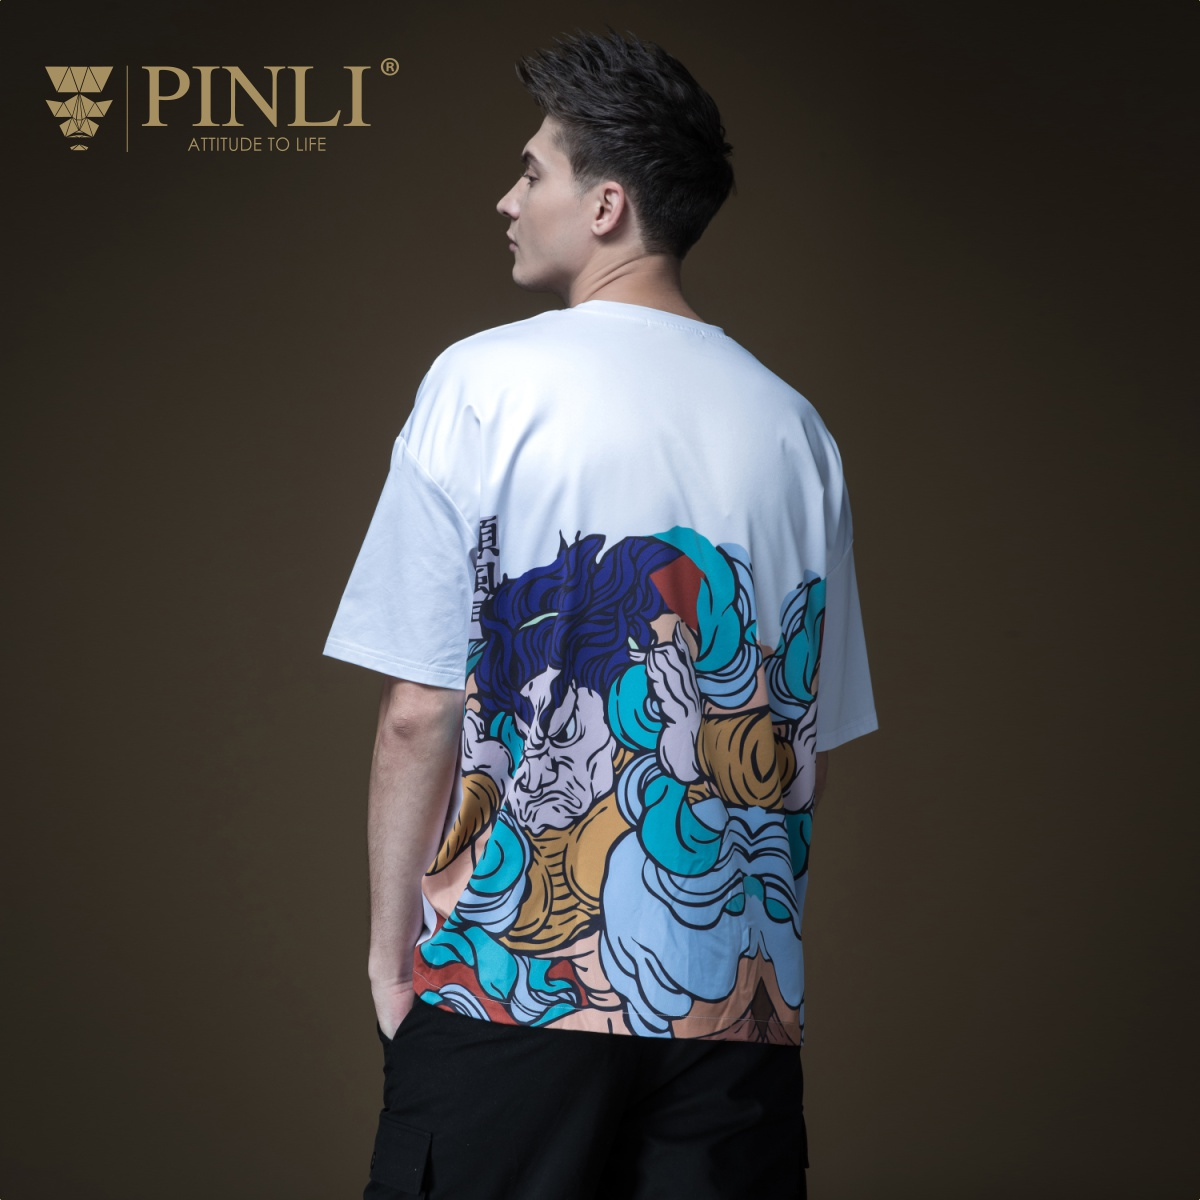 US $24 05 49% OFF|2019 Linkin Park Limited Pinli Product Made The New  Summer Men's Wear Loose Sleeve Printing Short T shirt Male Coat  B192411399-in